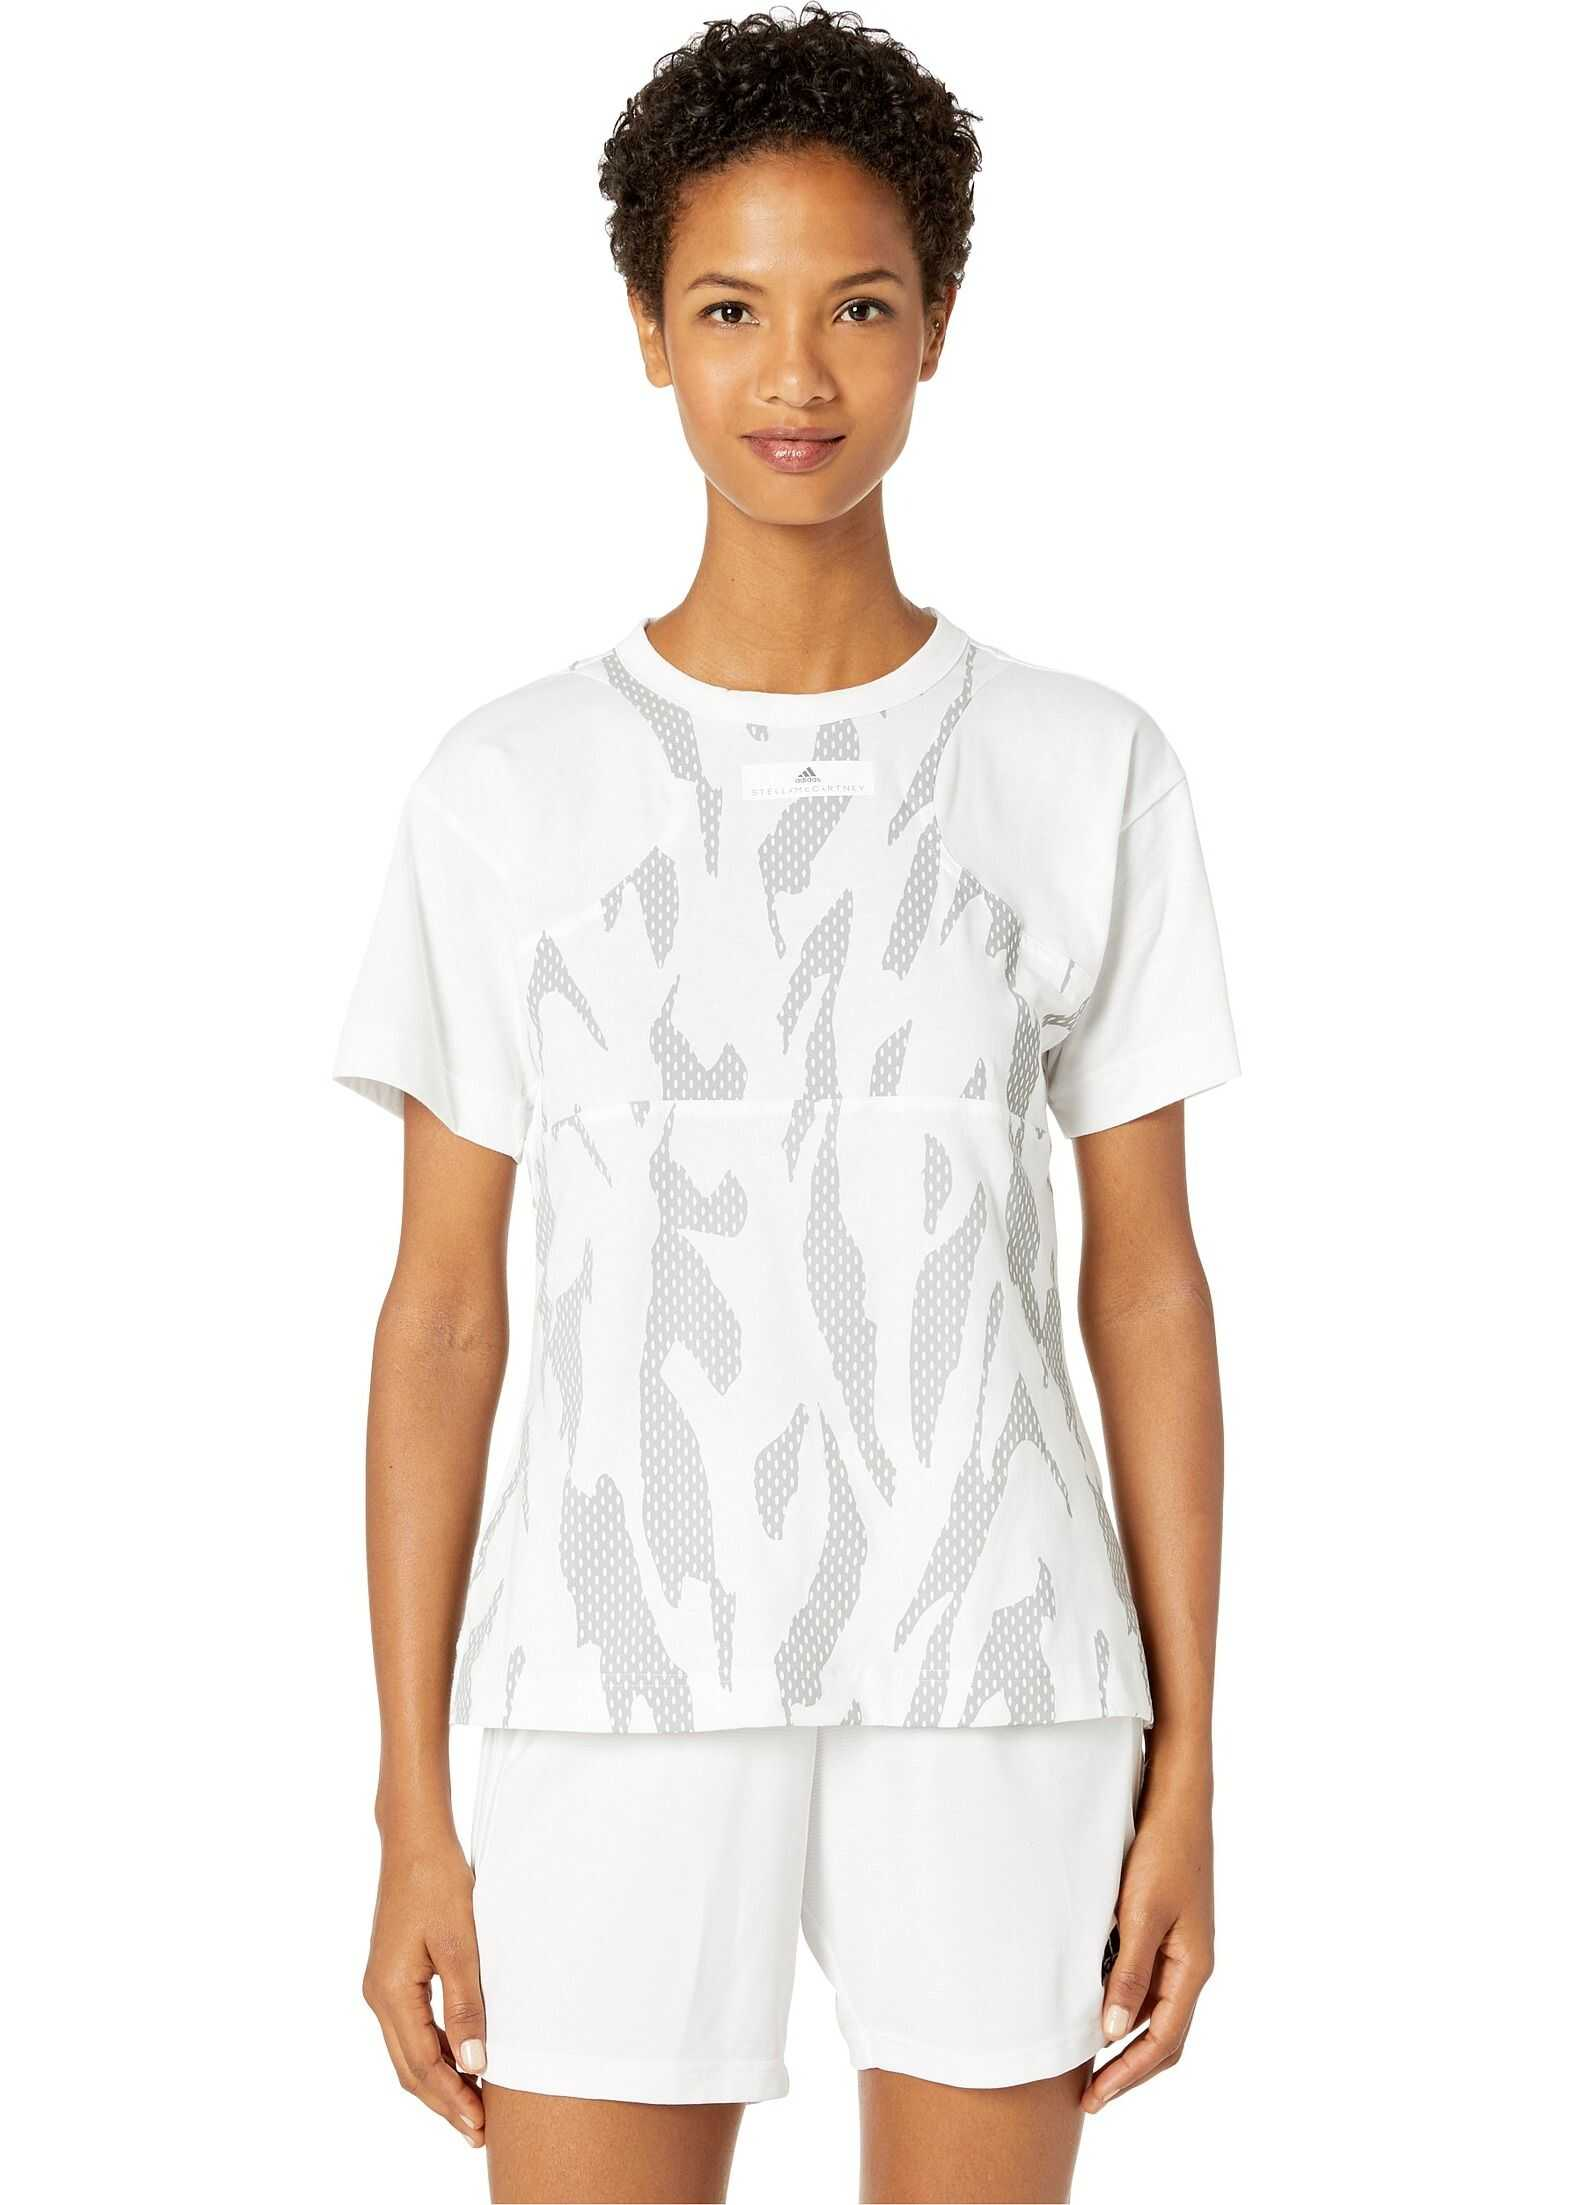 adidas by Stella McCartney Abstract Graphic Tee EA2610 White